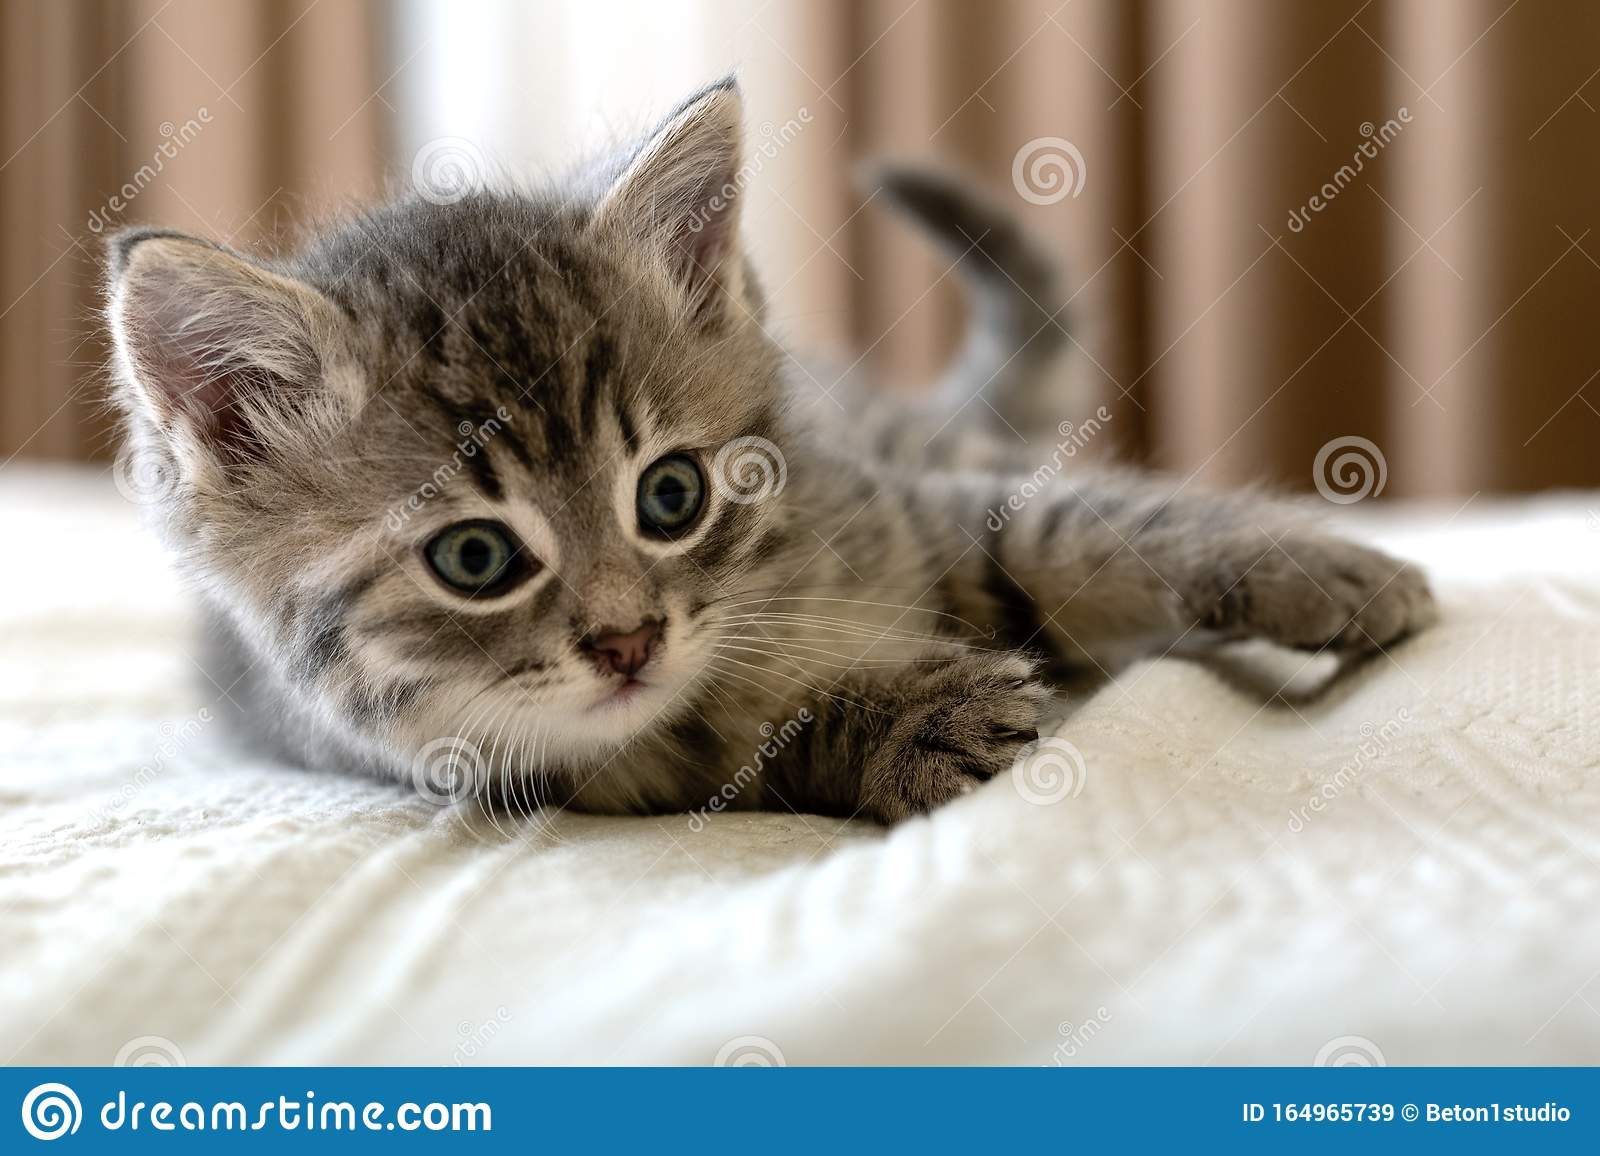 Cute Tabby Kitten Lies On White Plaid At Home Newborn Kitten Baby Cat Kid Animal And Cat Concept Domestic Animal Home Pet Stock Image Image Of Beautiful Grey 164965739